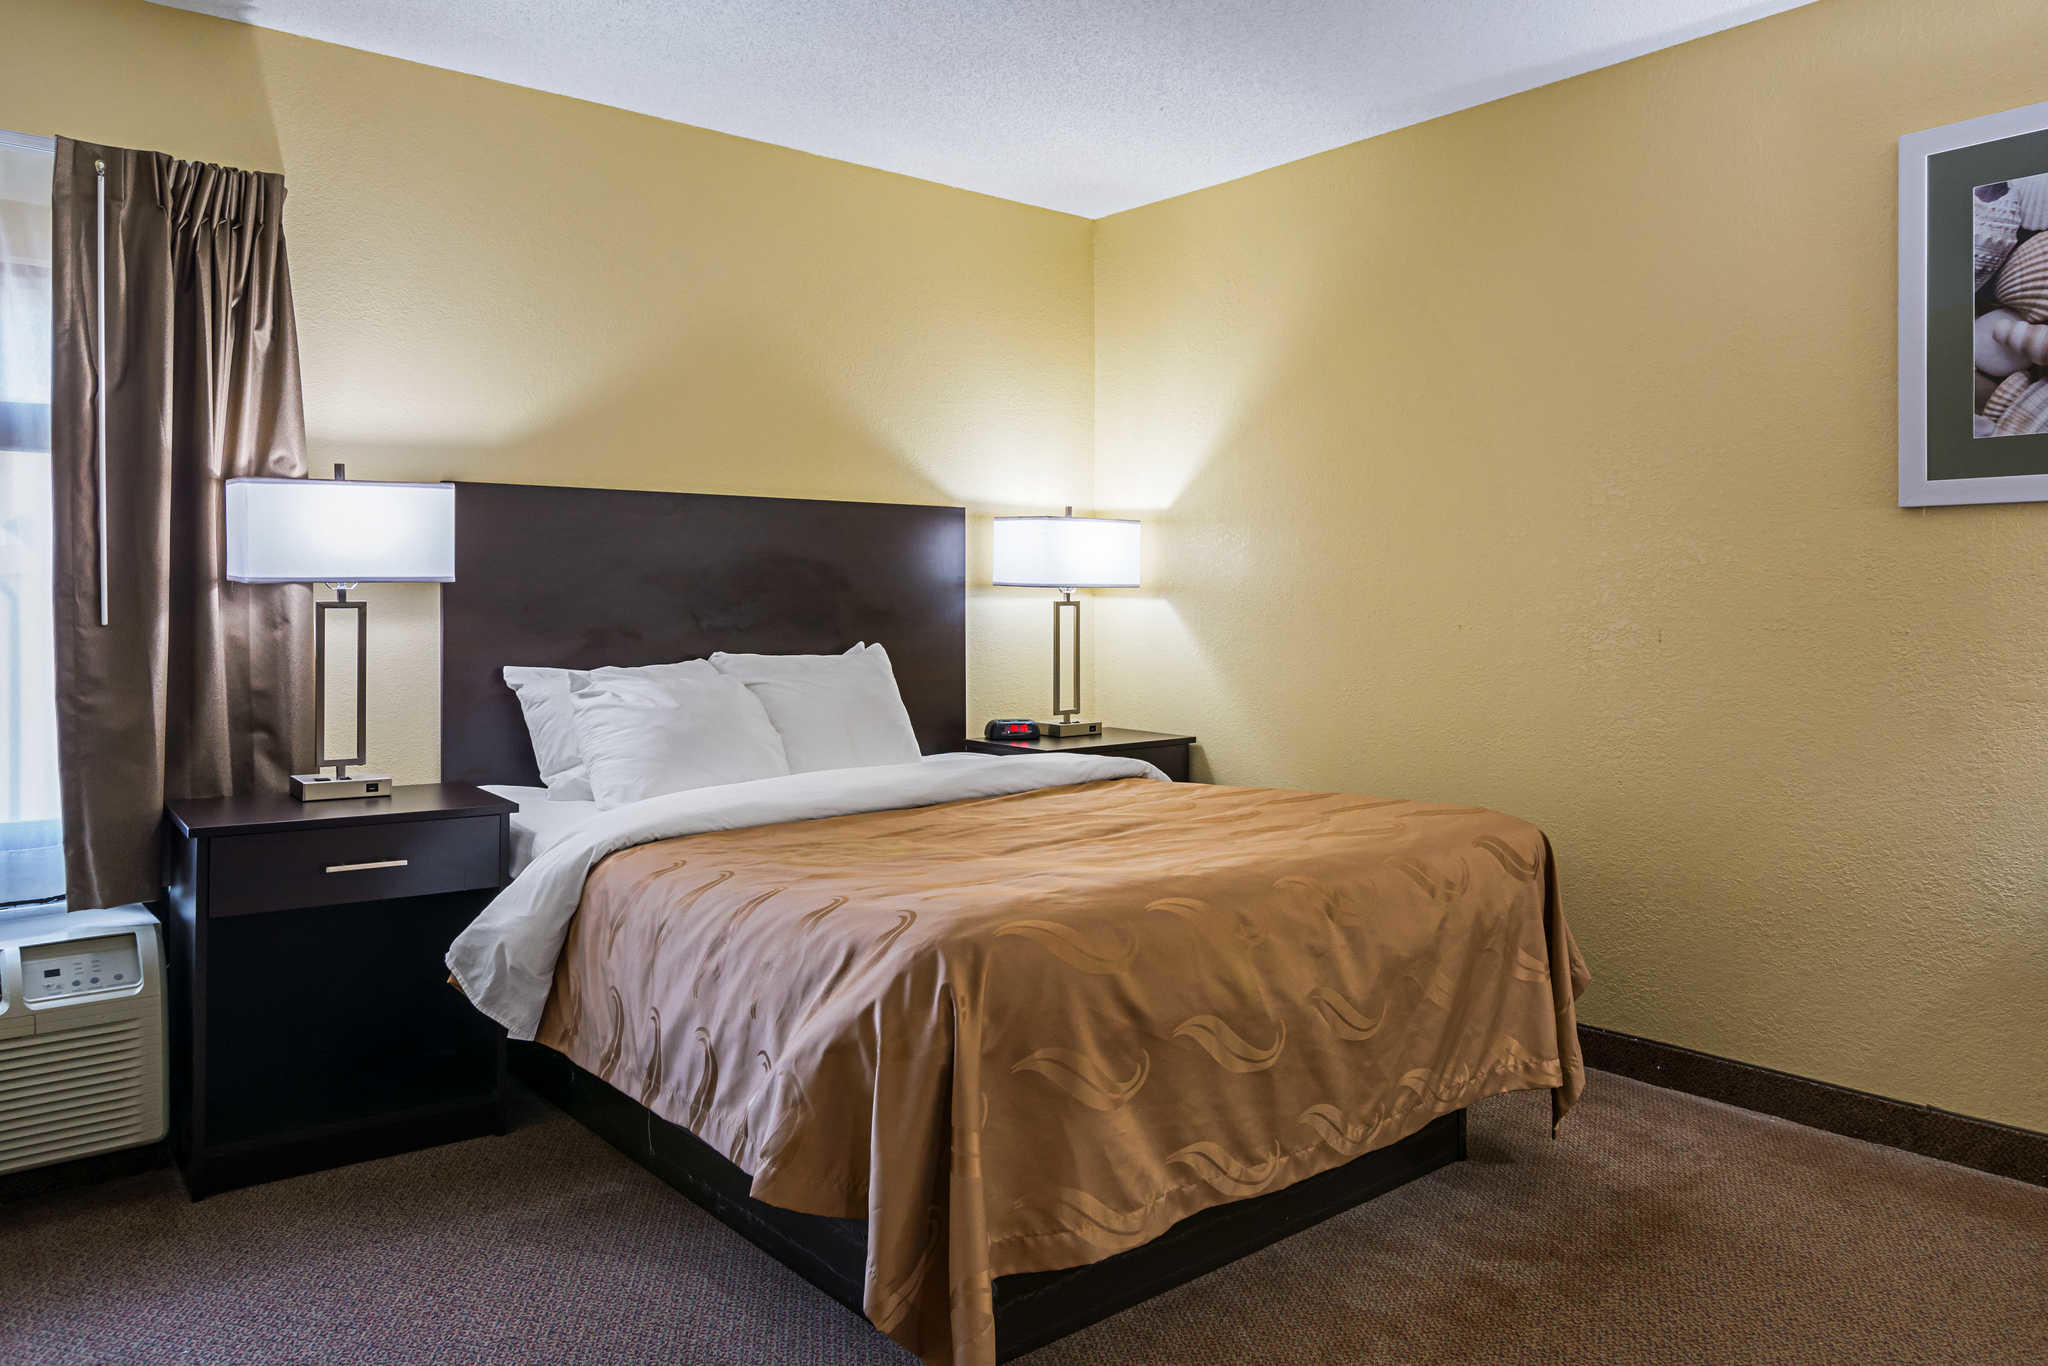 Quality Inn & Suites Greensburg I-74 image 17